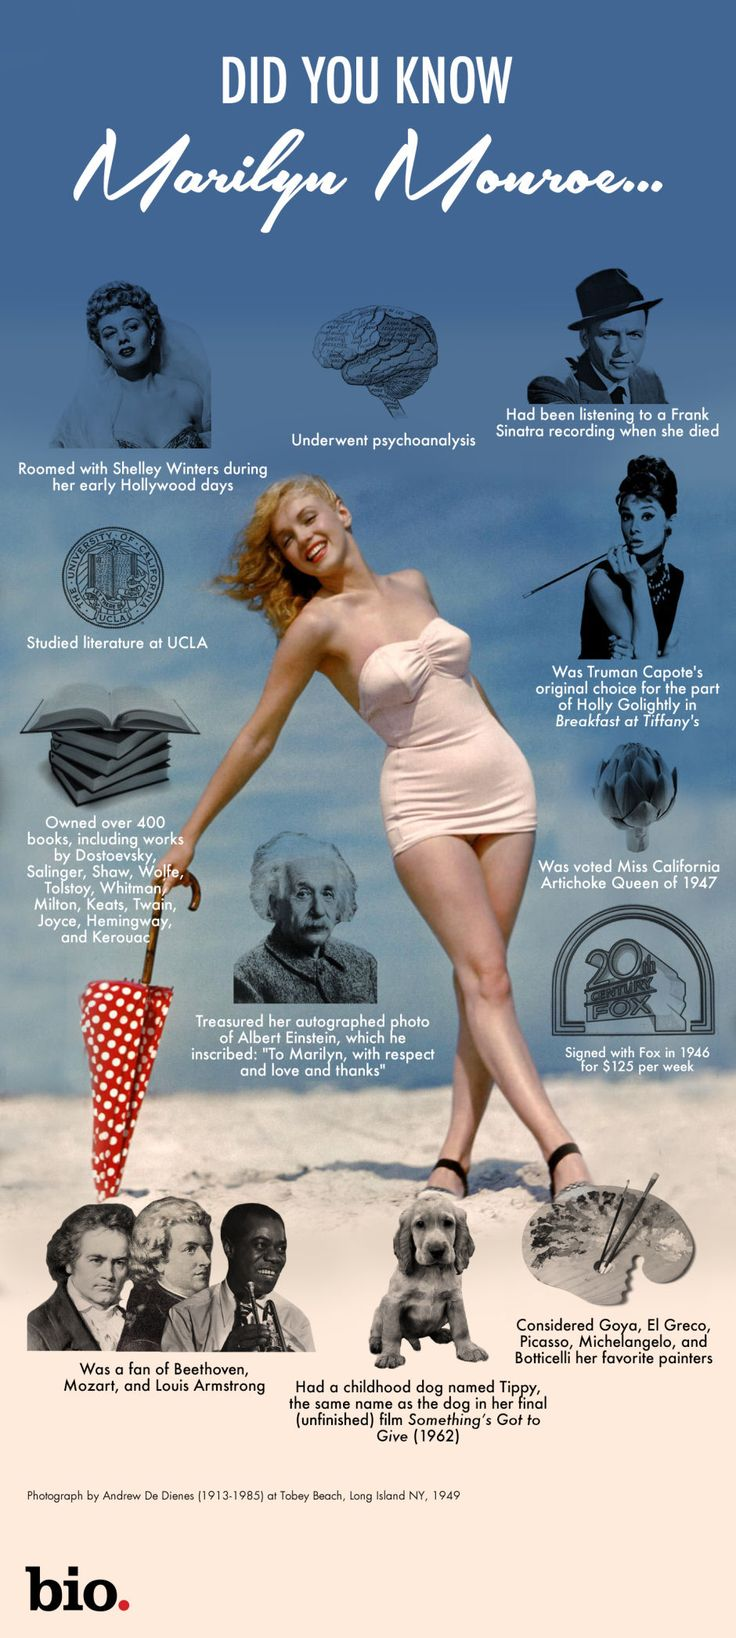 Remembering Marilyn Monroe: An Infographic of Fun Facts and Trivia - Biography.com